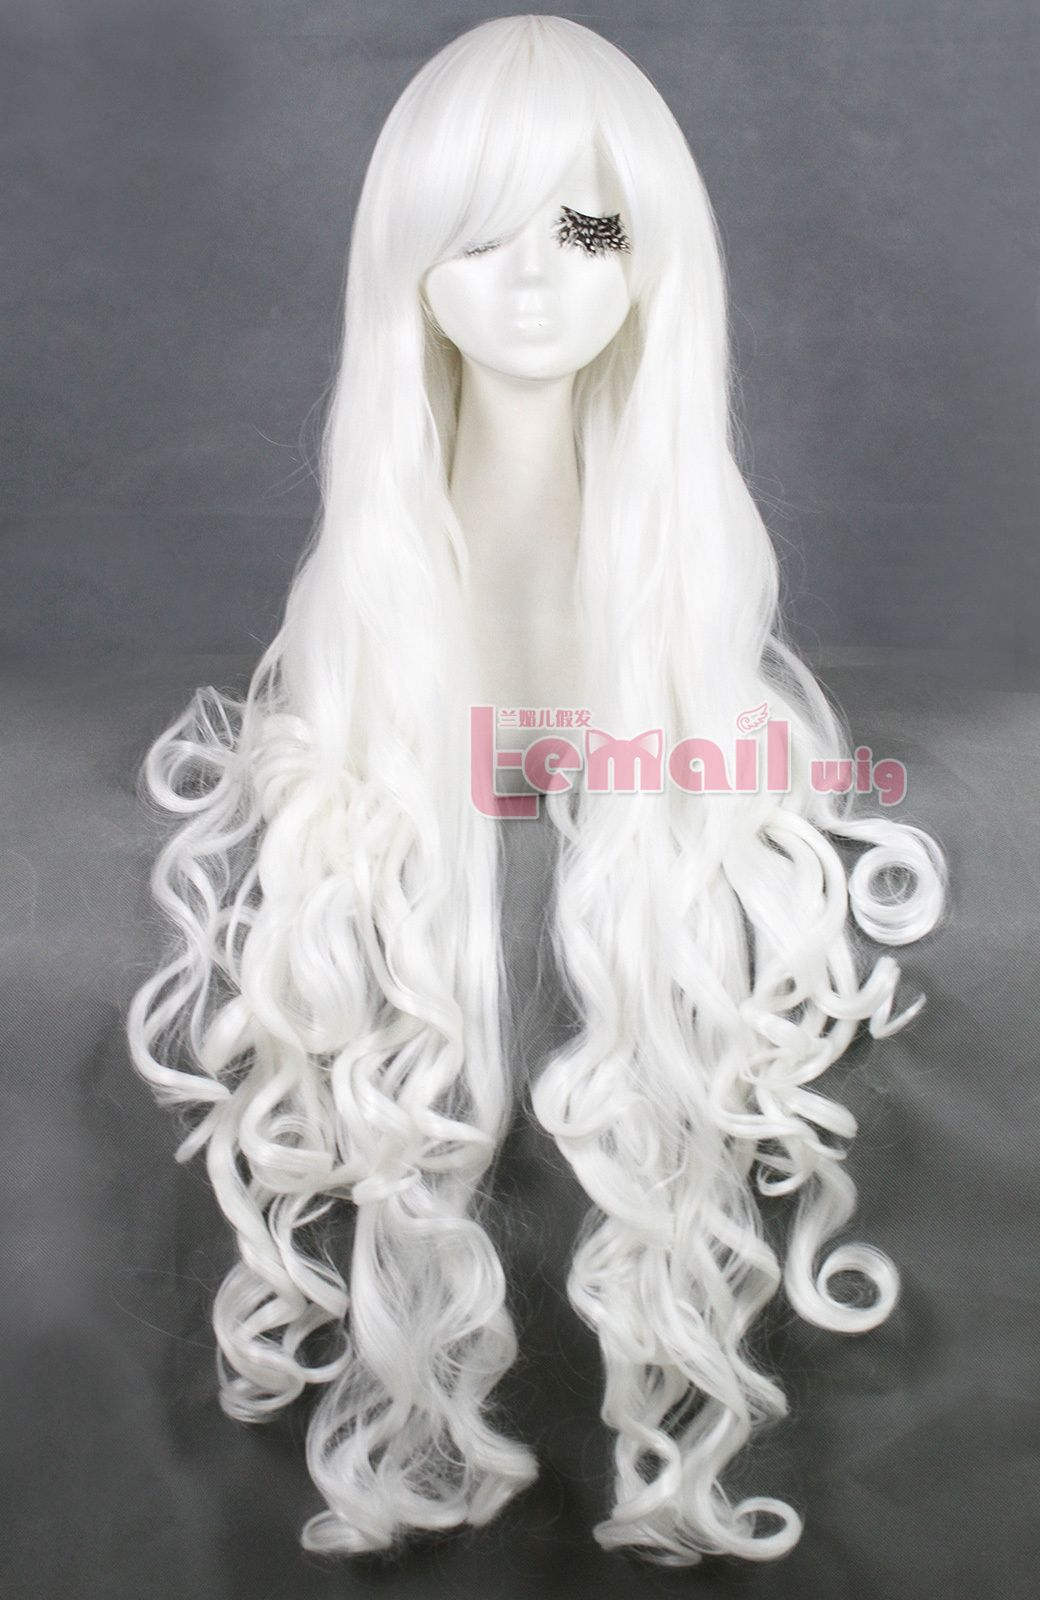 Long White Wig 100cm Long White Body Wavy Cosplay Wig Cb64d White Hair Treatment Lace Frontal Wig Black Girl White Hair